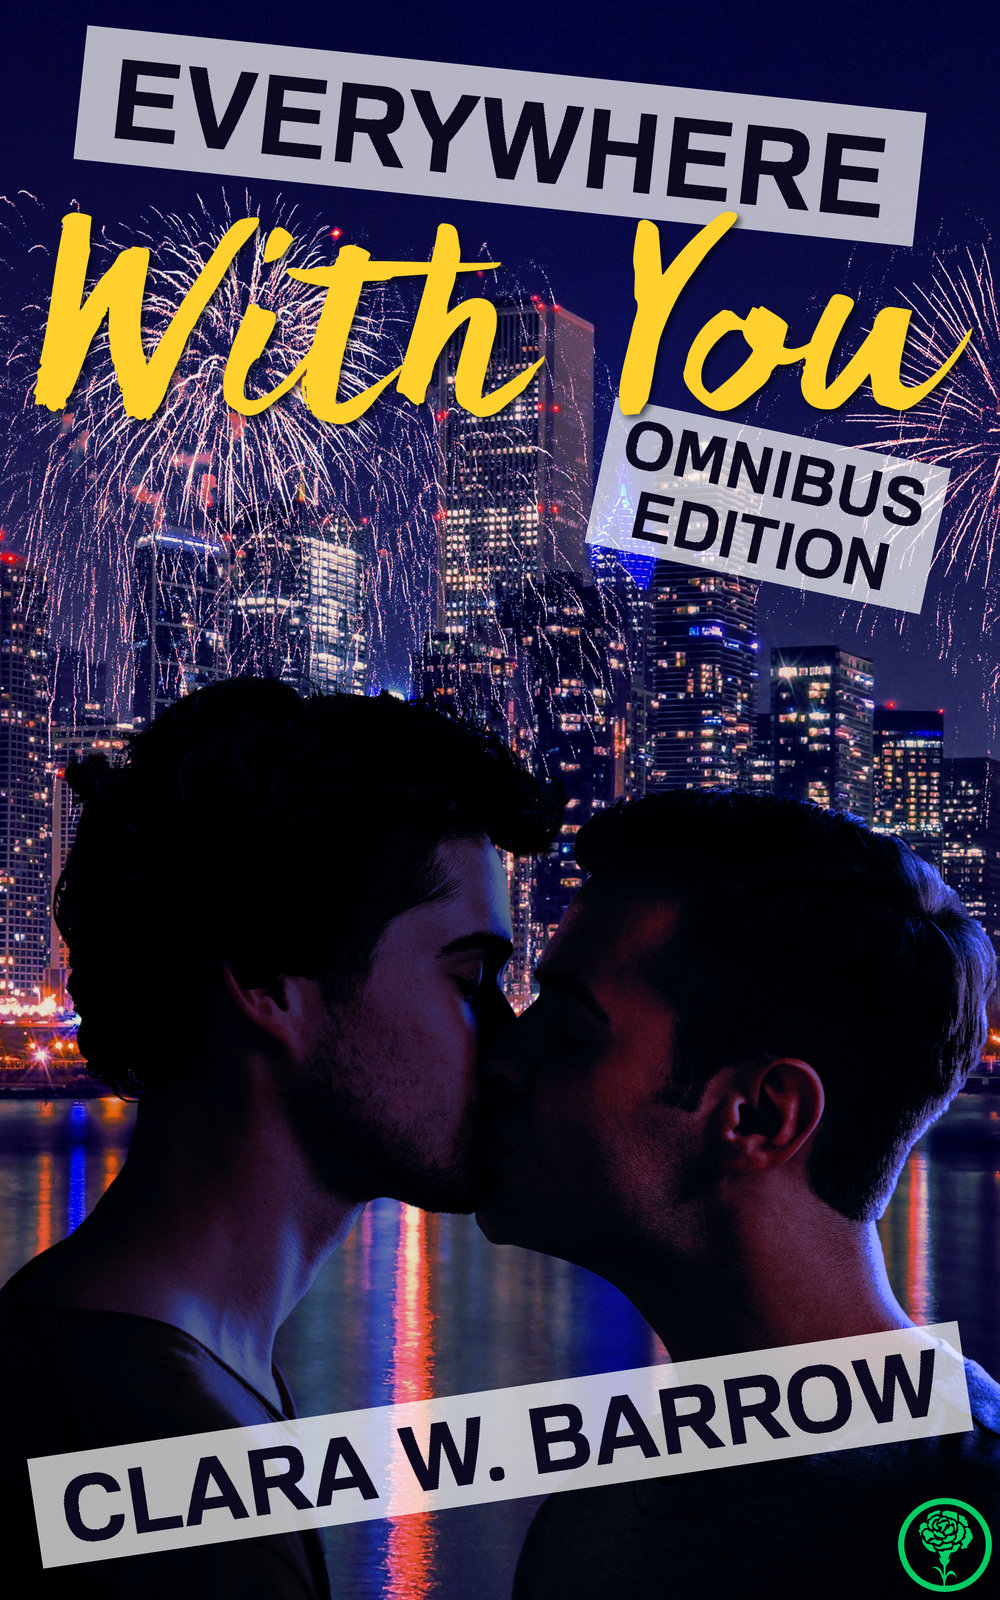 """Two steamy romances,one gorgeous paperback! - This omnibus collects two red-hot gay romance novels together for the first time.Everywhere With You (Omnibus Edition)contains the steamy full text of the friends-to-lovers romance novels Just Like That (Gone and Changed)and Everywhere with You, full of luxurious love scenes and the development of a heartwarming and healthy relationship.Plus, get the Kindle book for free when you buy the paperback version!What happens when you fall in love with your best friend?Introspective, sensitive Sam and loyal, kind-hearted Will are best friends who grew up together on neighboring farms. They've shared everything — until Sam leaves for college and shuts Will out of his life.Determined not to lose his best friend, Will confronts Sam at their favorite swimming hole and forces the situation to a passionate confrontation. That hot and steamy summer changes their lives forever.After an agonizing fall semester spent a thousand miles apart, they finally make it home for the holidays, but spending Christmas with their small-town families brings an unexpected set of challenges.An escape to nearby Chicago proves to be the perfect way to spend their first New Year's Eve together. As they grow their relationship against the backdrop of the Windy City's vibrant gay community and fall deeper in love, new experiences and new choices give them the most memorable experiences of their life together so far.But will the biggest obstacle in the way of their happiness be Sam himself?Experience the story of a lifelong friendship that transforms into a love unlike any other. Read the pair of erotic romance novels that reviewers are calling """"captivating,"""" """"uplifting,"""" """"tender,"""" """"sexy,"""" """"gorgeous,"""" and """"a romantic coming-of-age tale that will sweep you away,"""" and experience what it's like to fall in love for the very first time."""